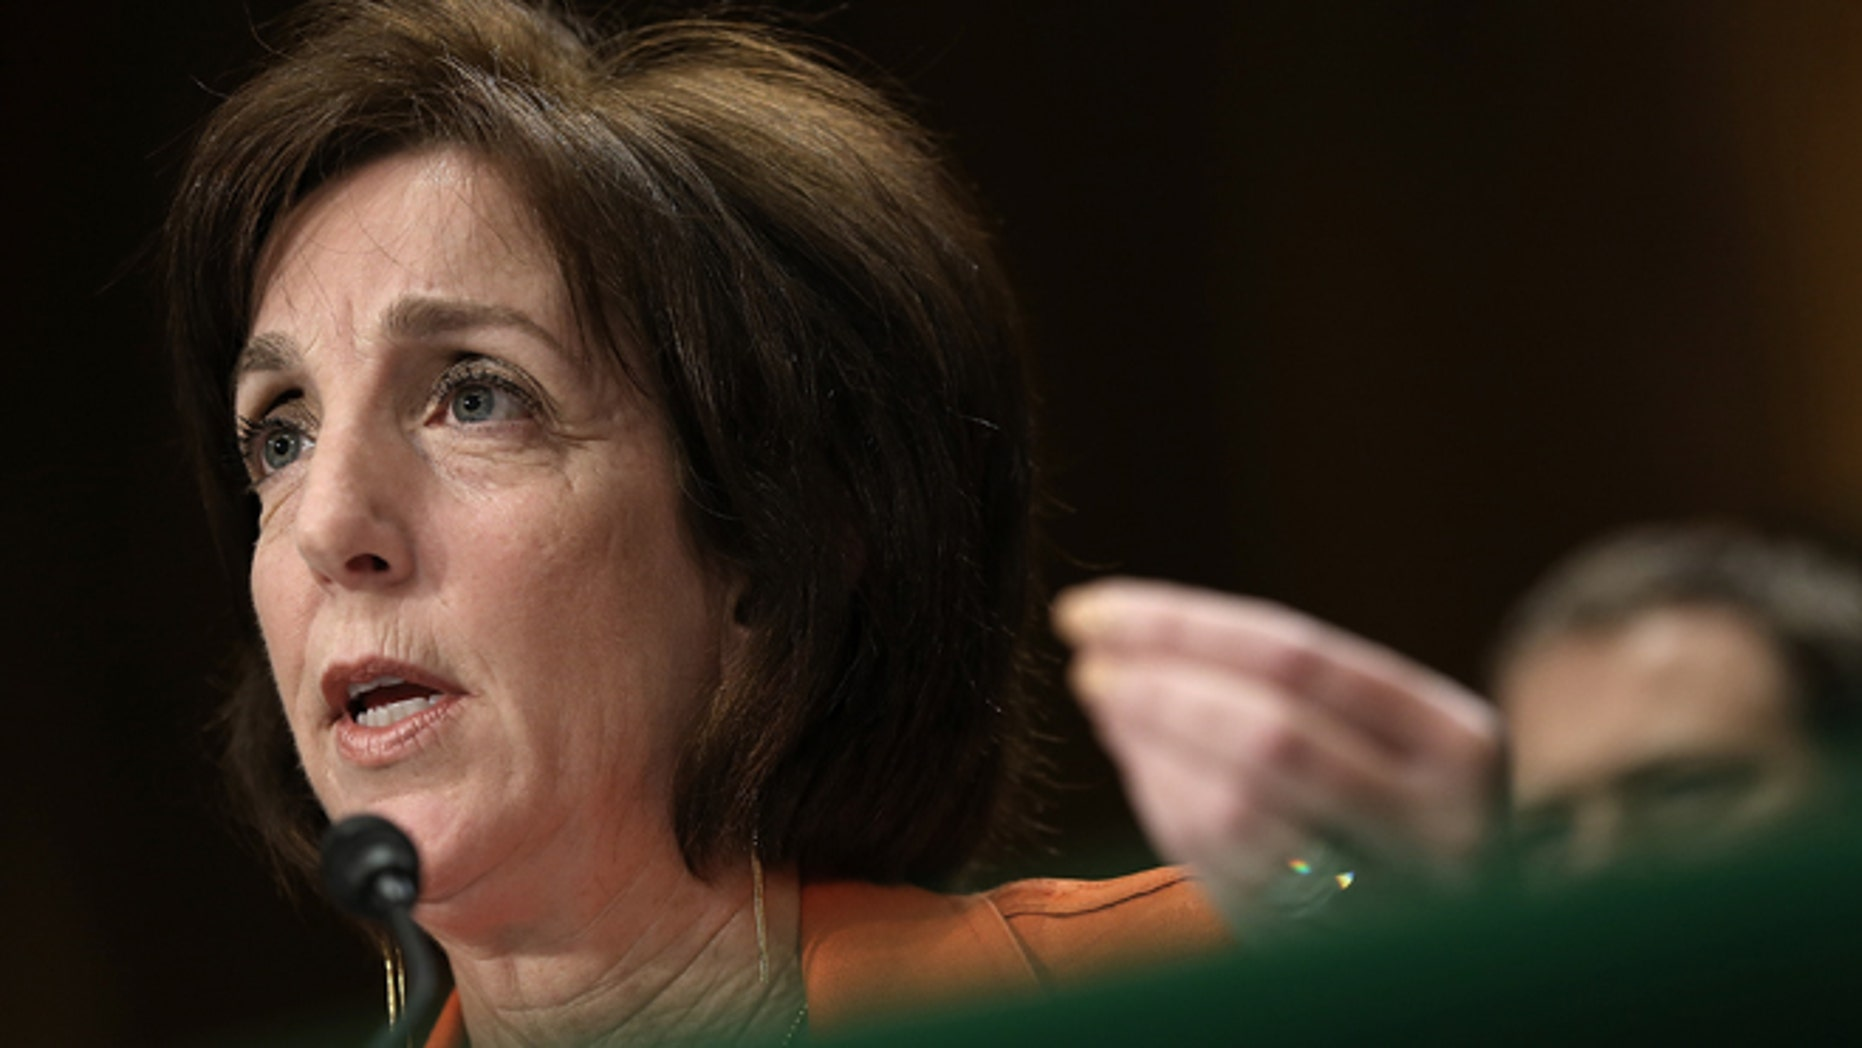 """WASHINGTON, DC - MAY 20: Assistant U.S. Secretary of State for Western Hemisphere Affairs Roberta Jacobson testifies before the Senate Foreign Relations Committee May 20, 2015 in Washington, DC. The committee heard testimony on the topic of """"U.S. Cuban Relations - The Way Forward."""" (Photo by Win McNamee/Getty Images)"""